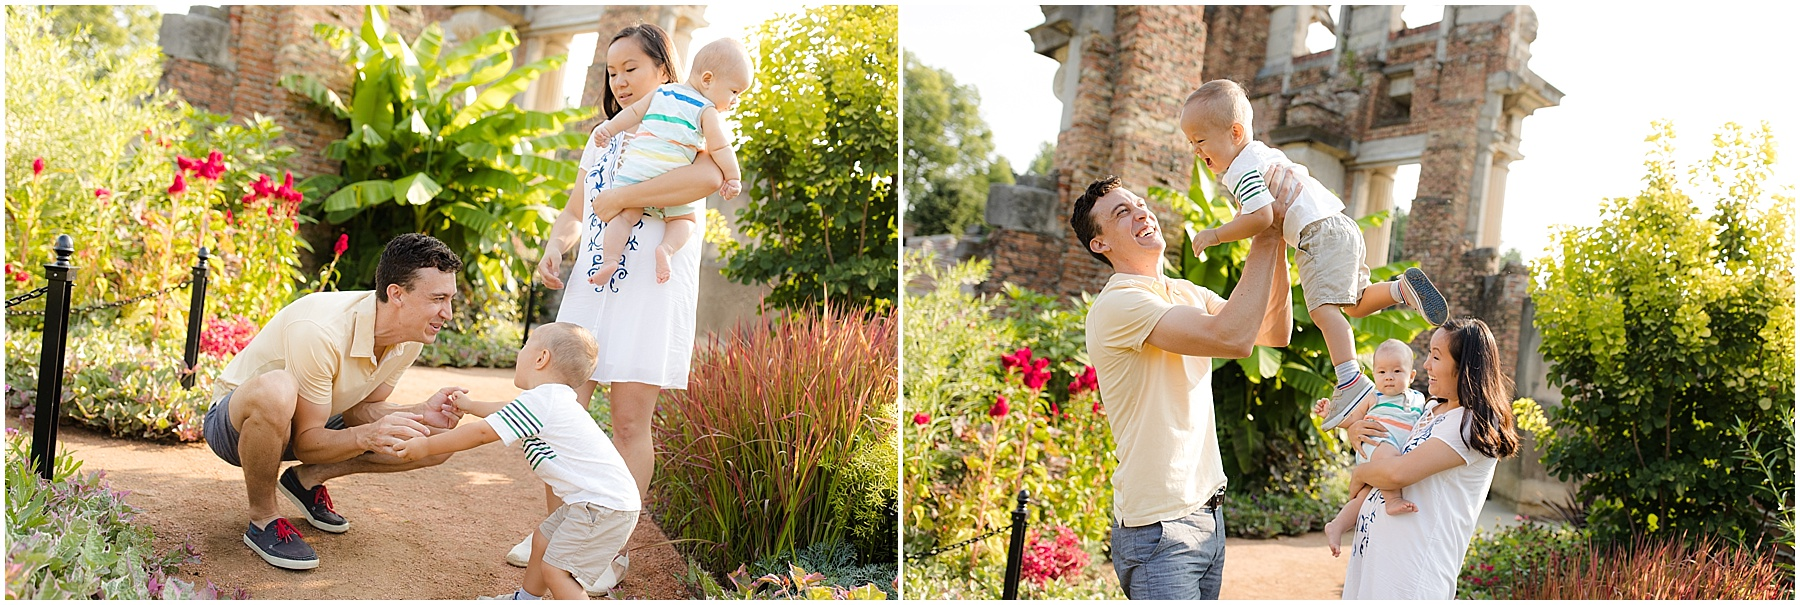 Husband and wife playing with their children.  Indianapolis Family Photography, Raindancer Studios